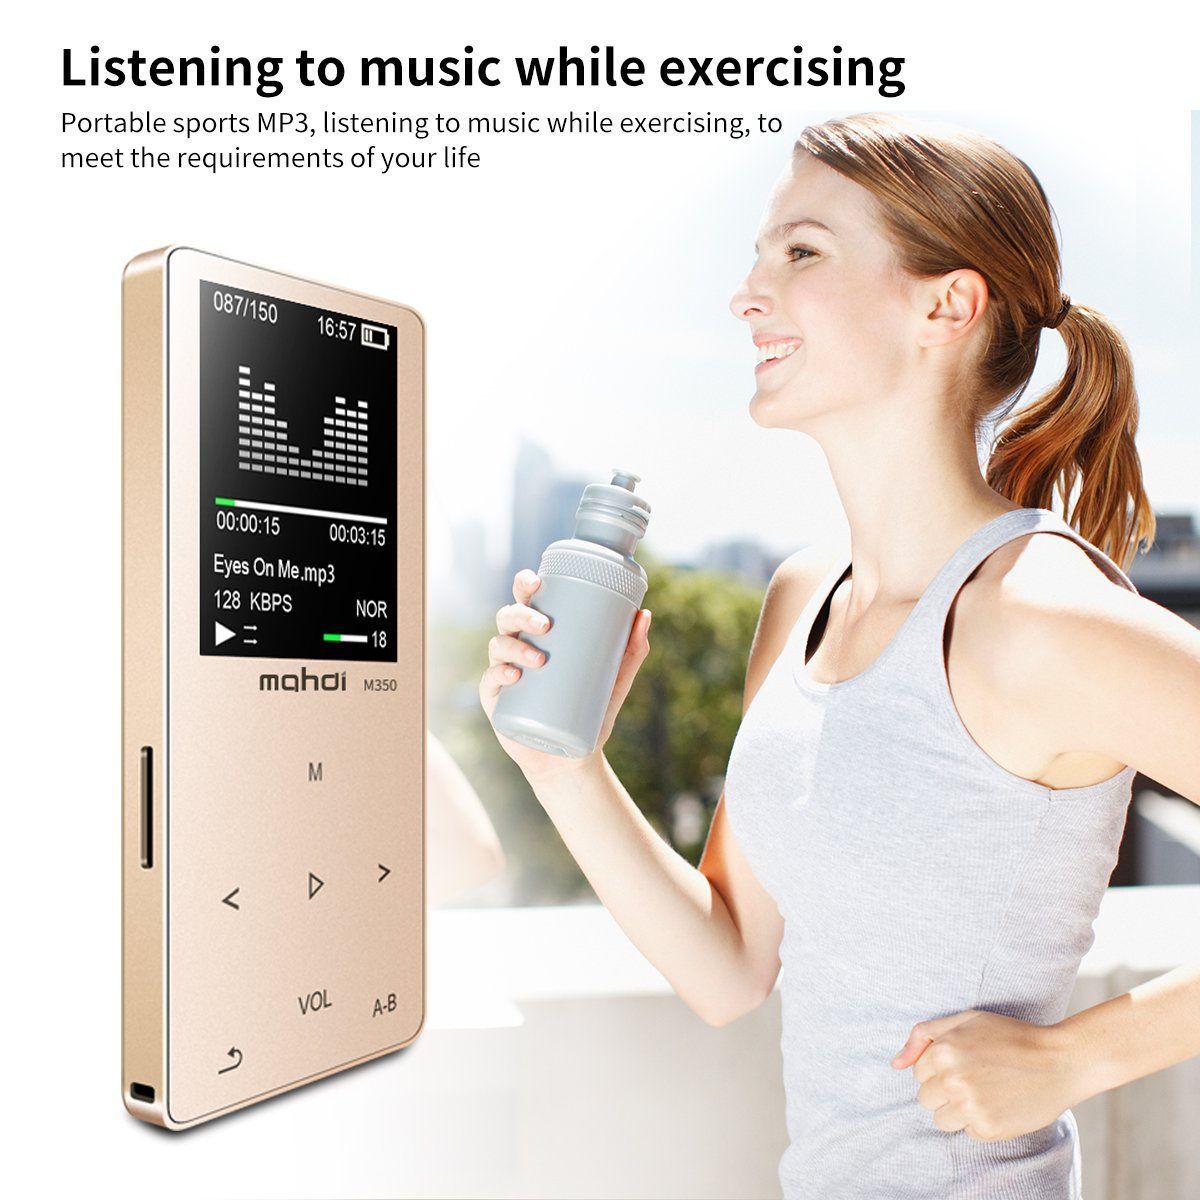 MYMAHDI MP3/MP4 Music Player, 8GB Portable Audio Player with Photo Viewer, Voice Recorder, FM Radio, A-B Playback, E-Book, Metal Body, Build-in Speaker with Headphone(Expandable Up to 128GB), in Gold